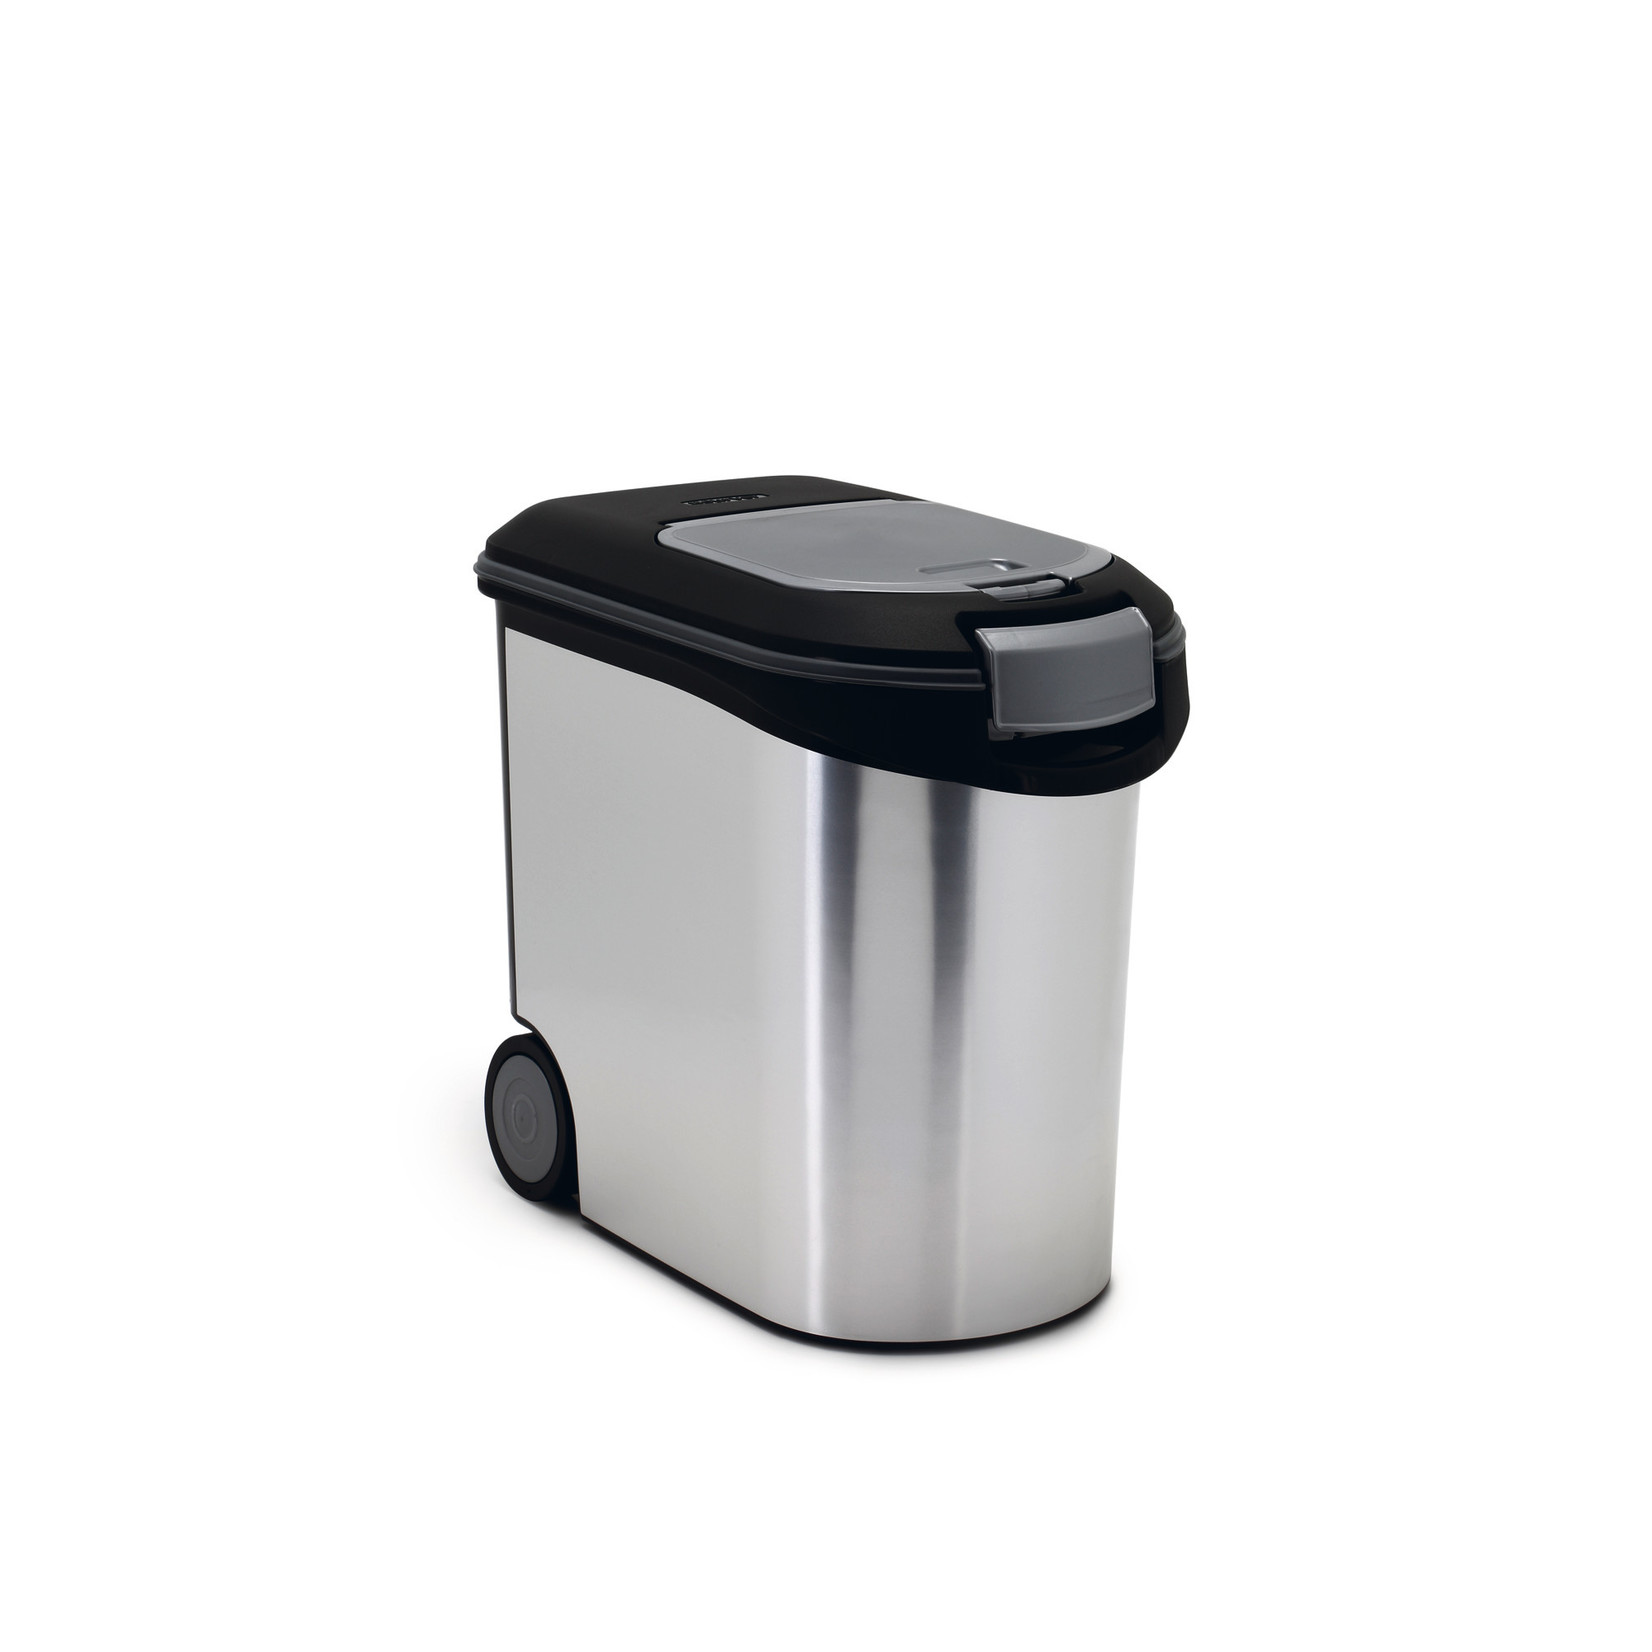 Curver Curver voedselcontainer Metallic 35 liter